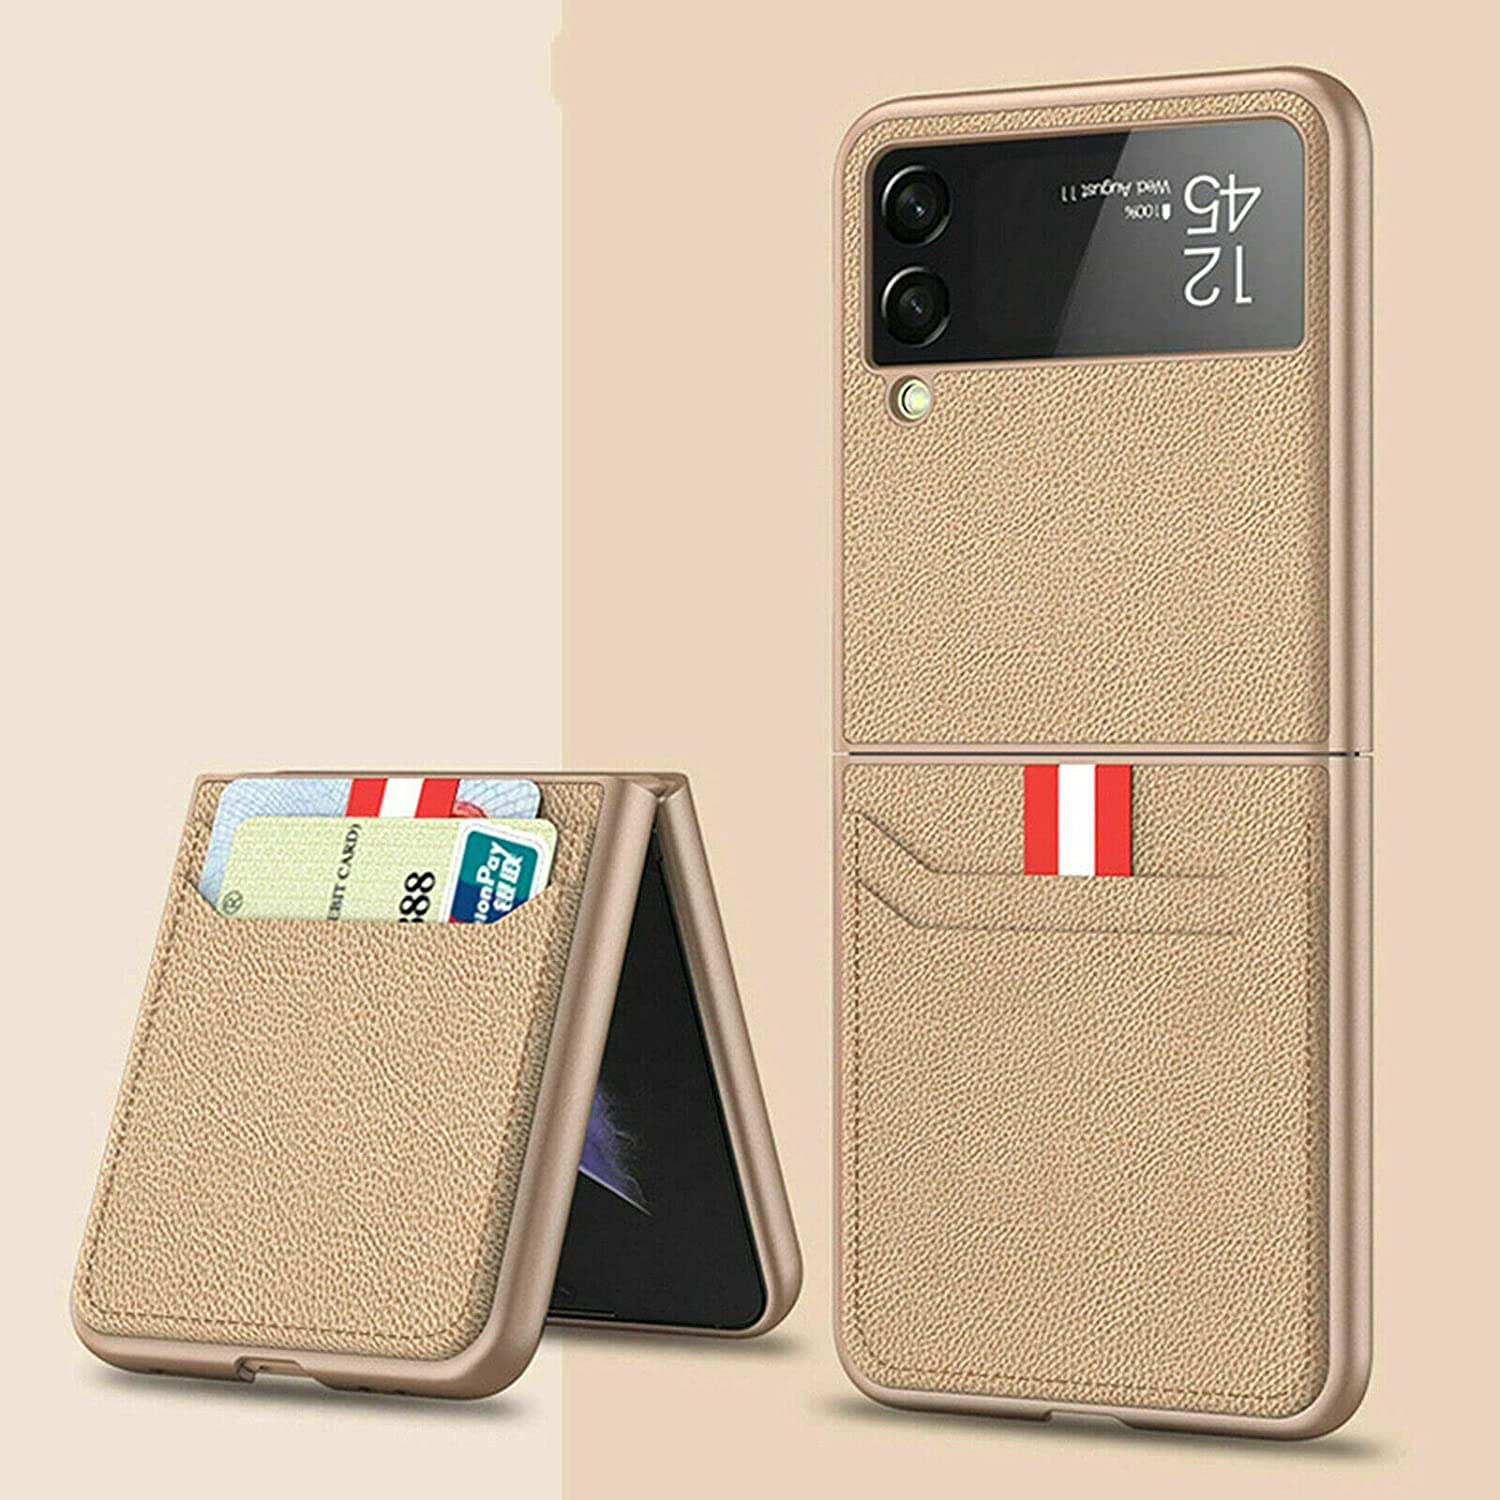 for Samsung Galaxy Z Flip 3 5G Case with Card Holder - Luxury PU Leather Phone Folding Case Cover Full Protective Cases (Gold)